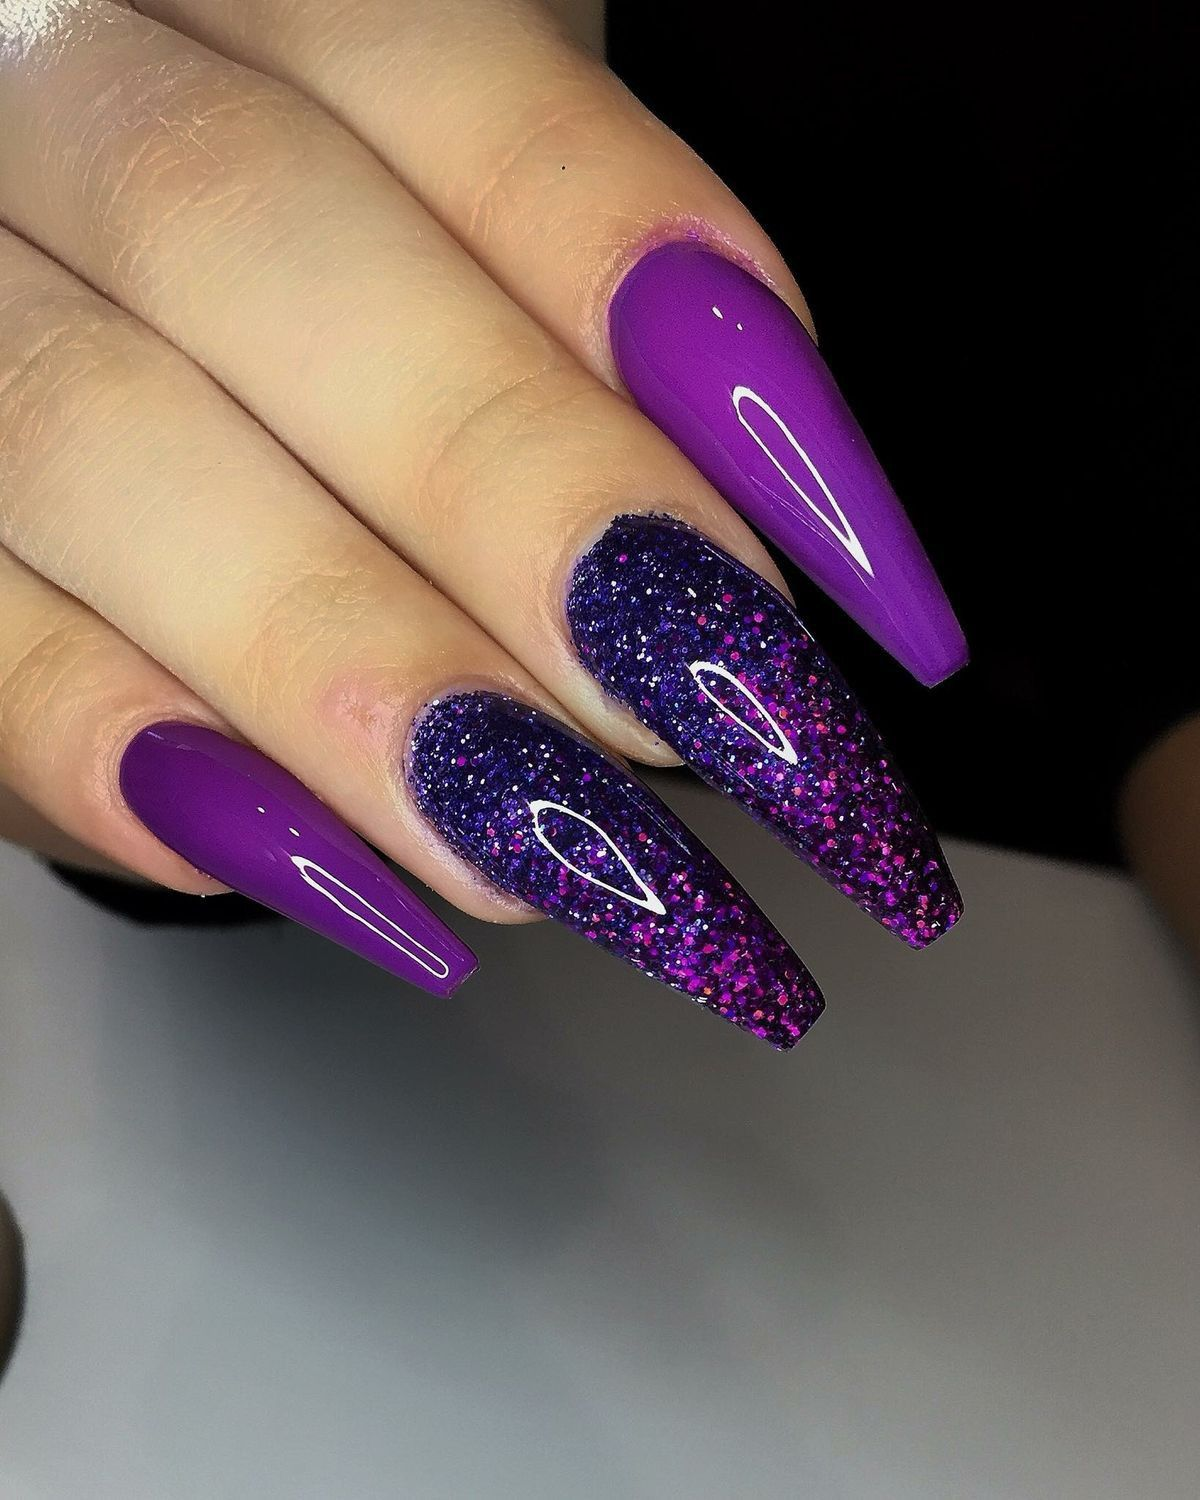 Pin By Jeanine Joyner On Nails Purple Nail Designs Coffin Nails Designs Pretty Nails